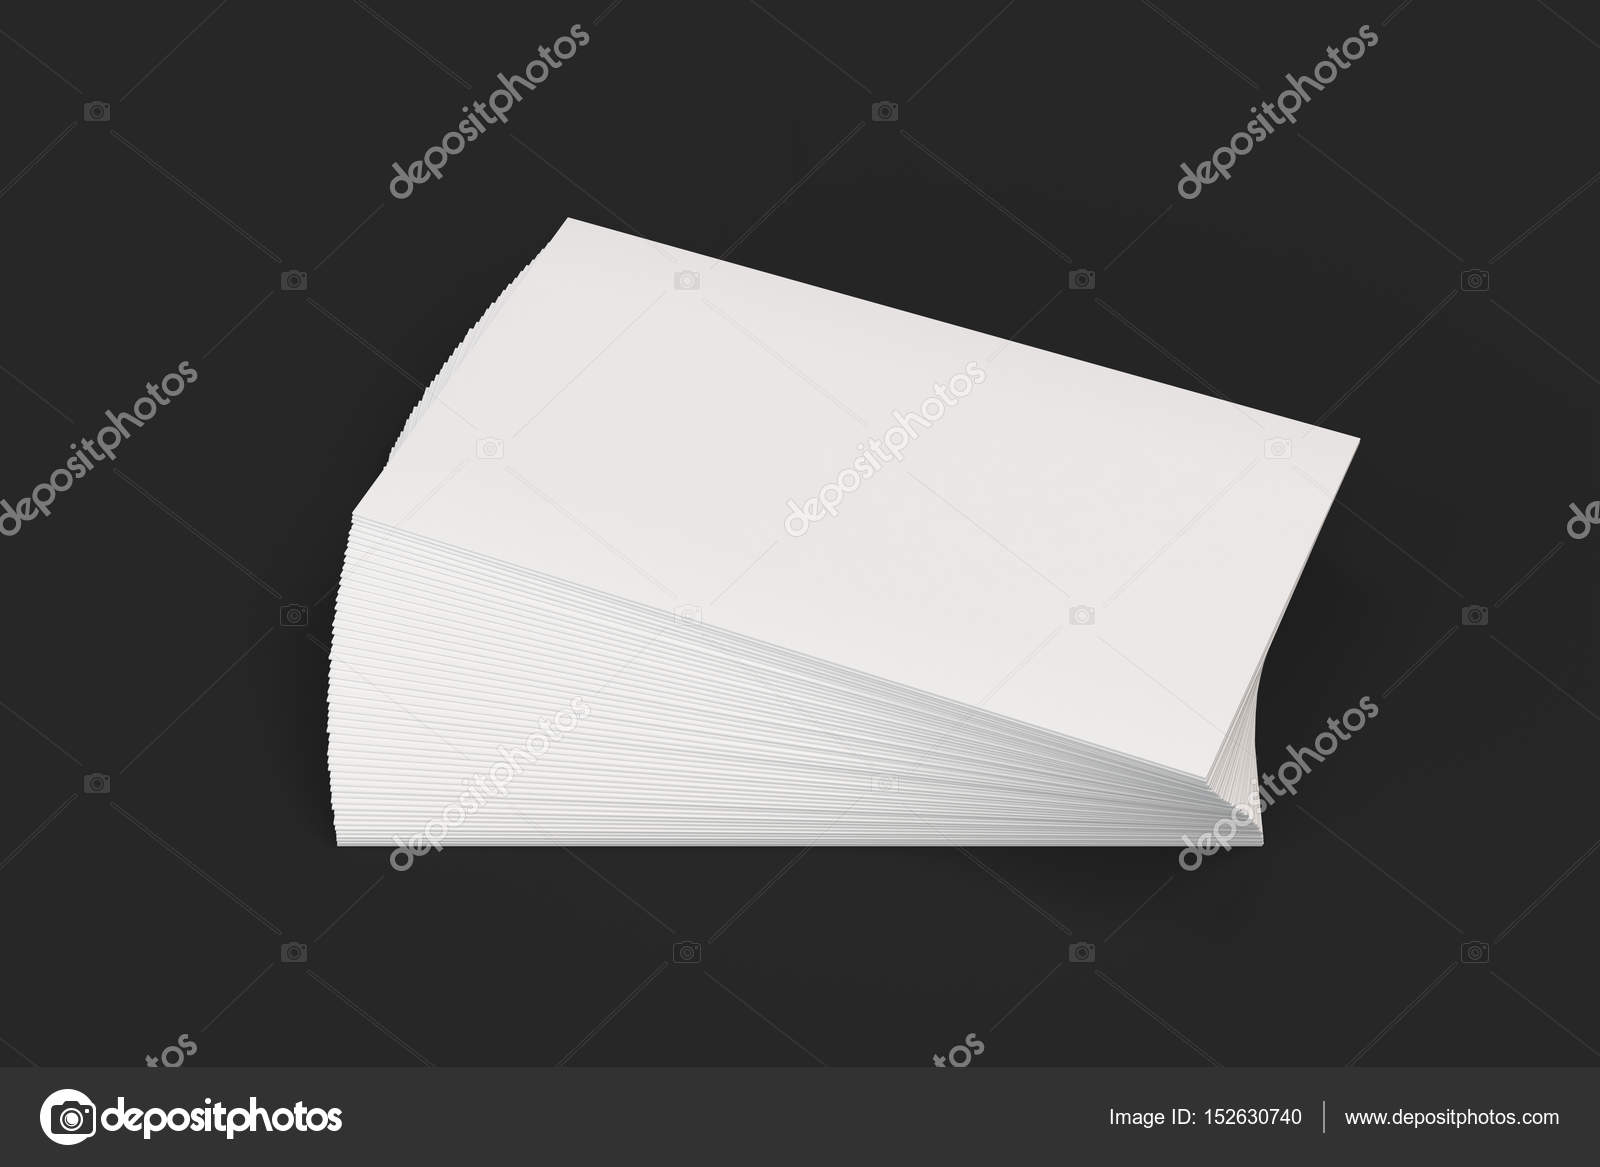 White blank business cards mock up on black background stock photo white blank business cards mock up on black background stock photo colourmoves